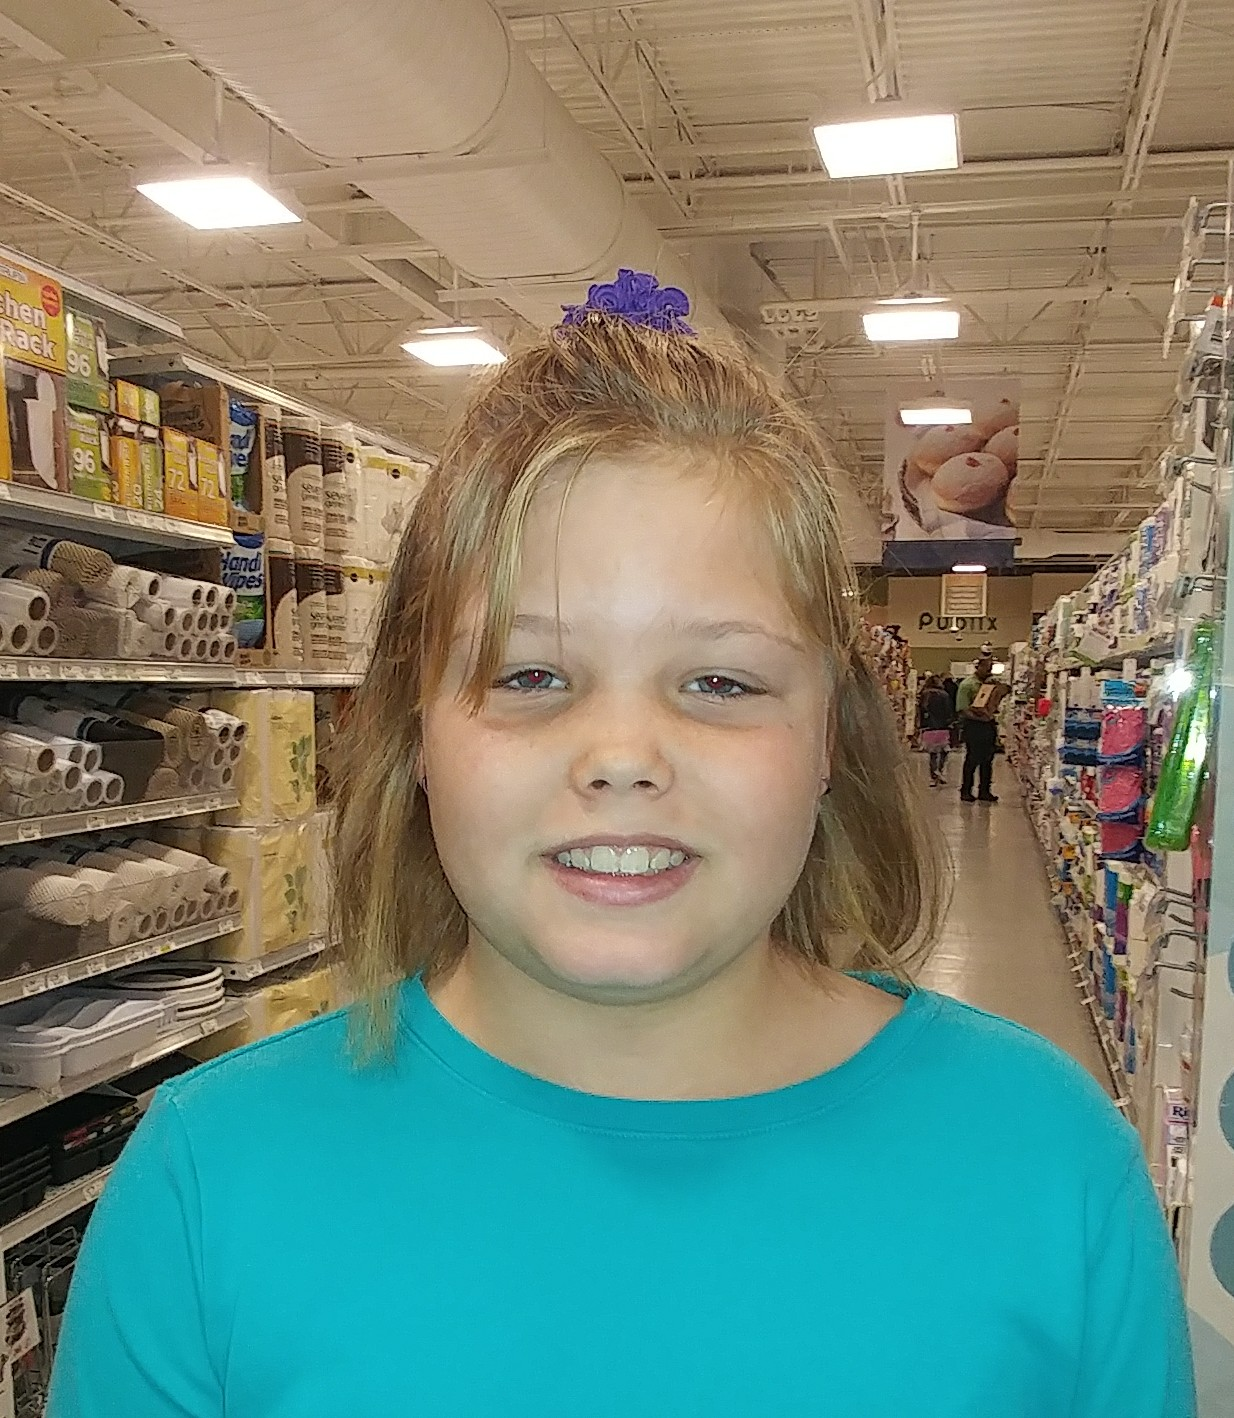 A teacher because I like to play around and learn.  Catie  Age 11